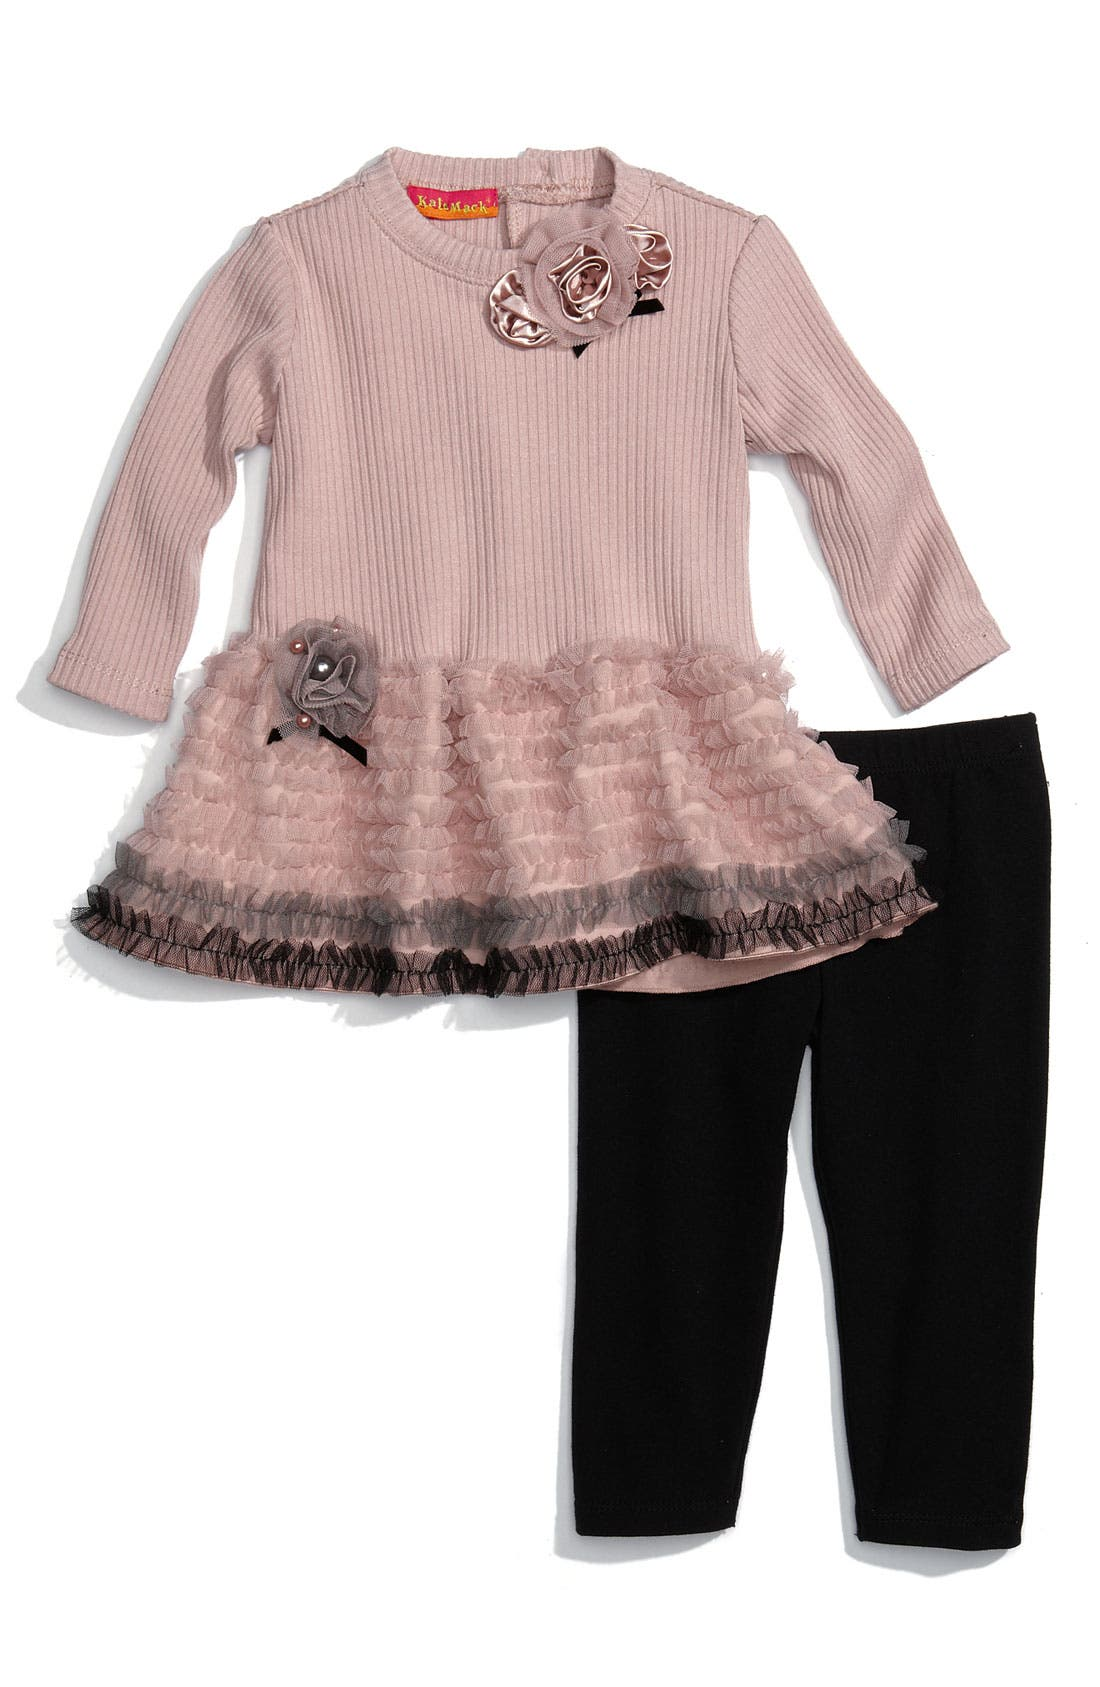 Main Image - Biscotti Ruffle Tunic & Legging Set (Infant)